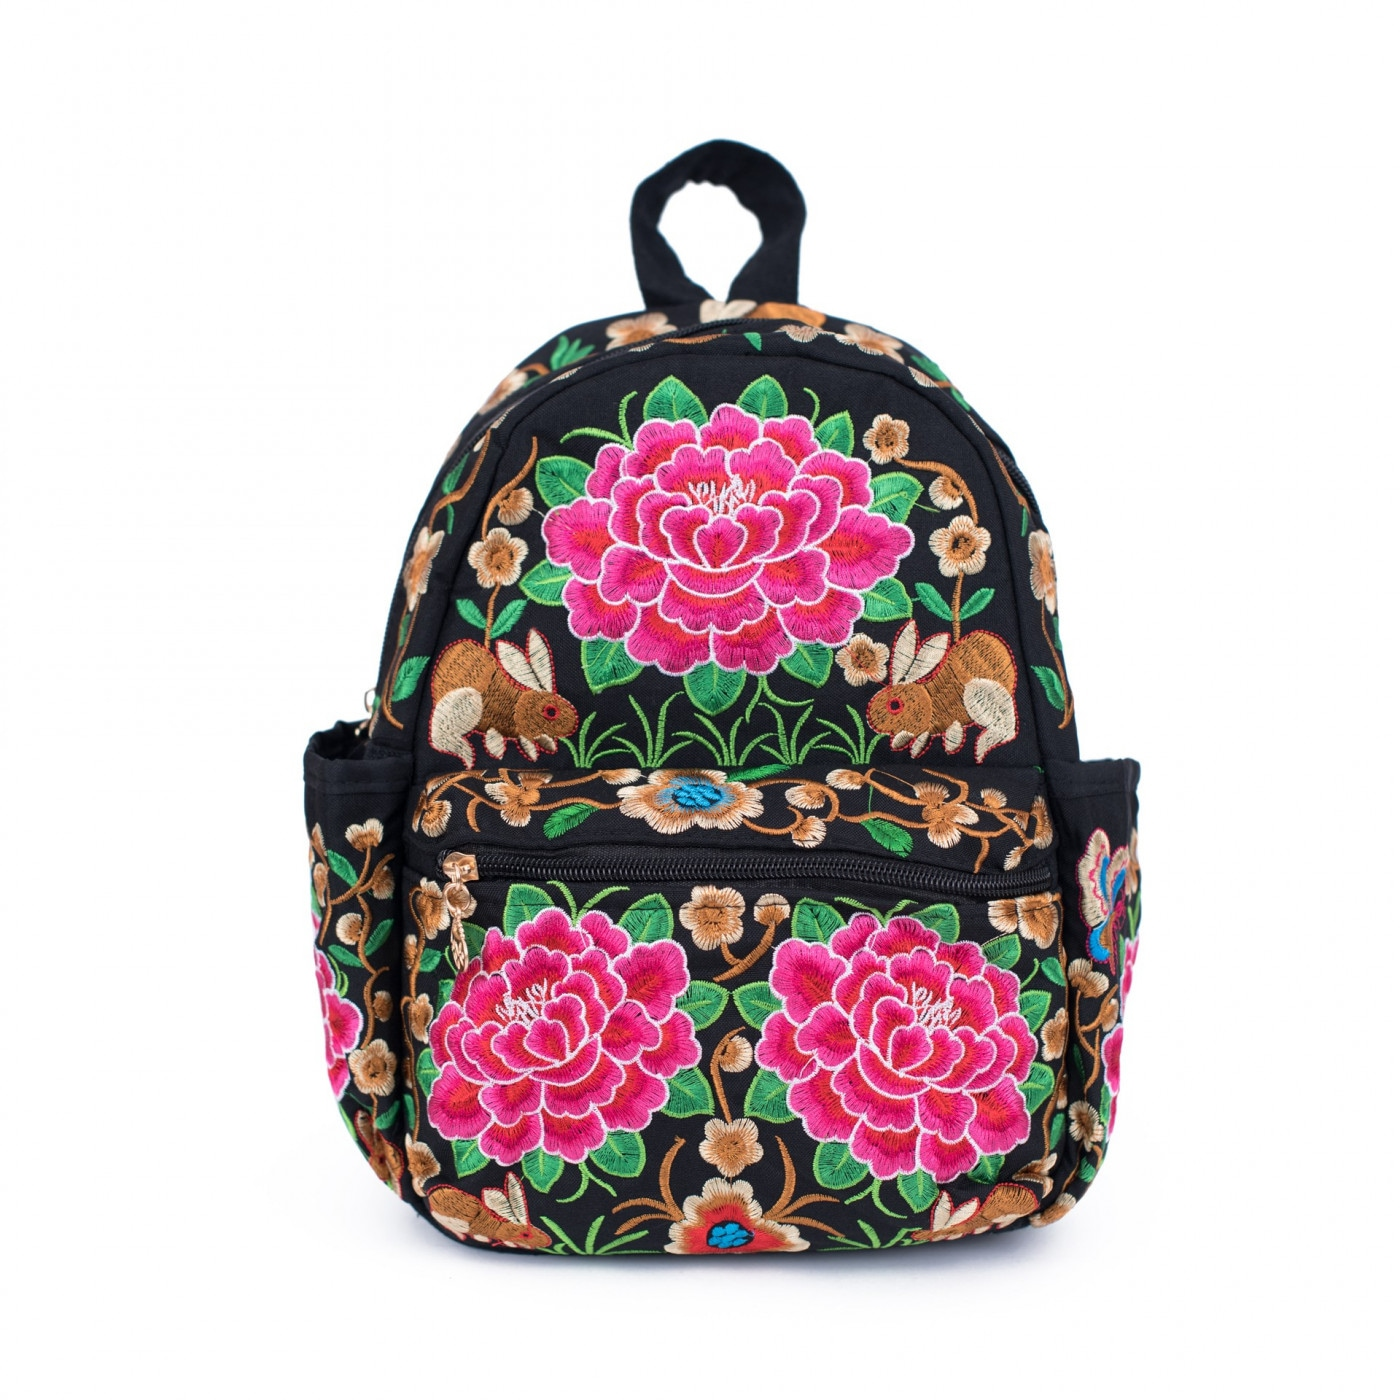 Art Of Polo Woman's Backpack tr18110 Black/Pink